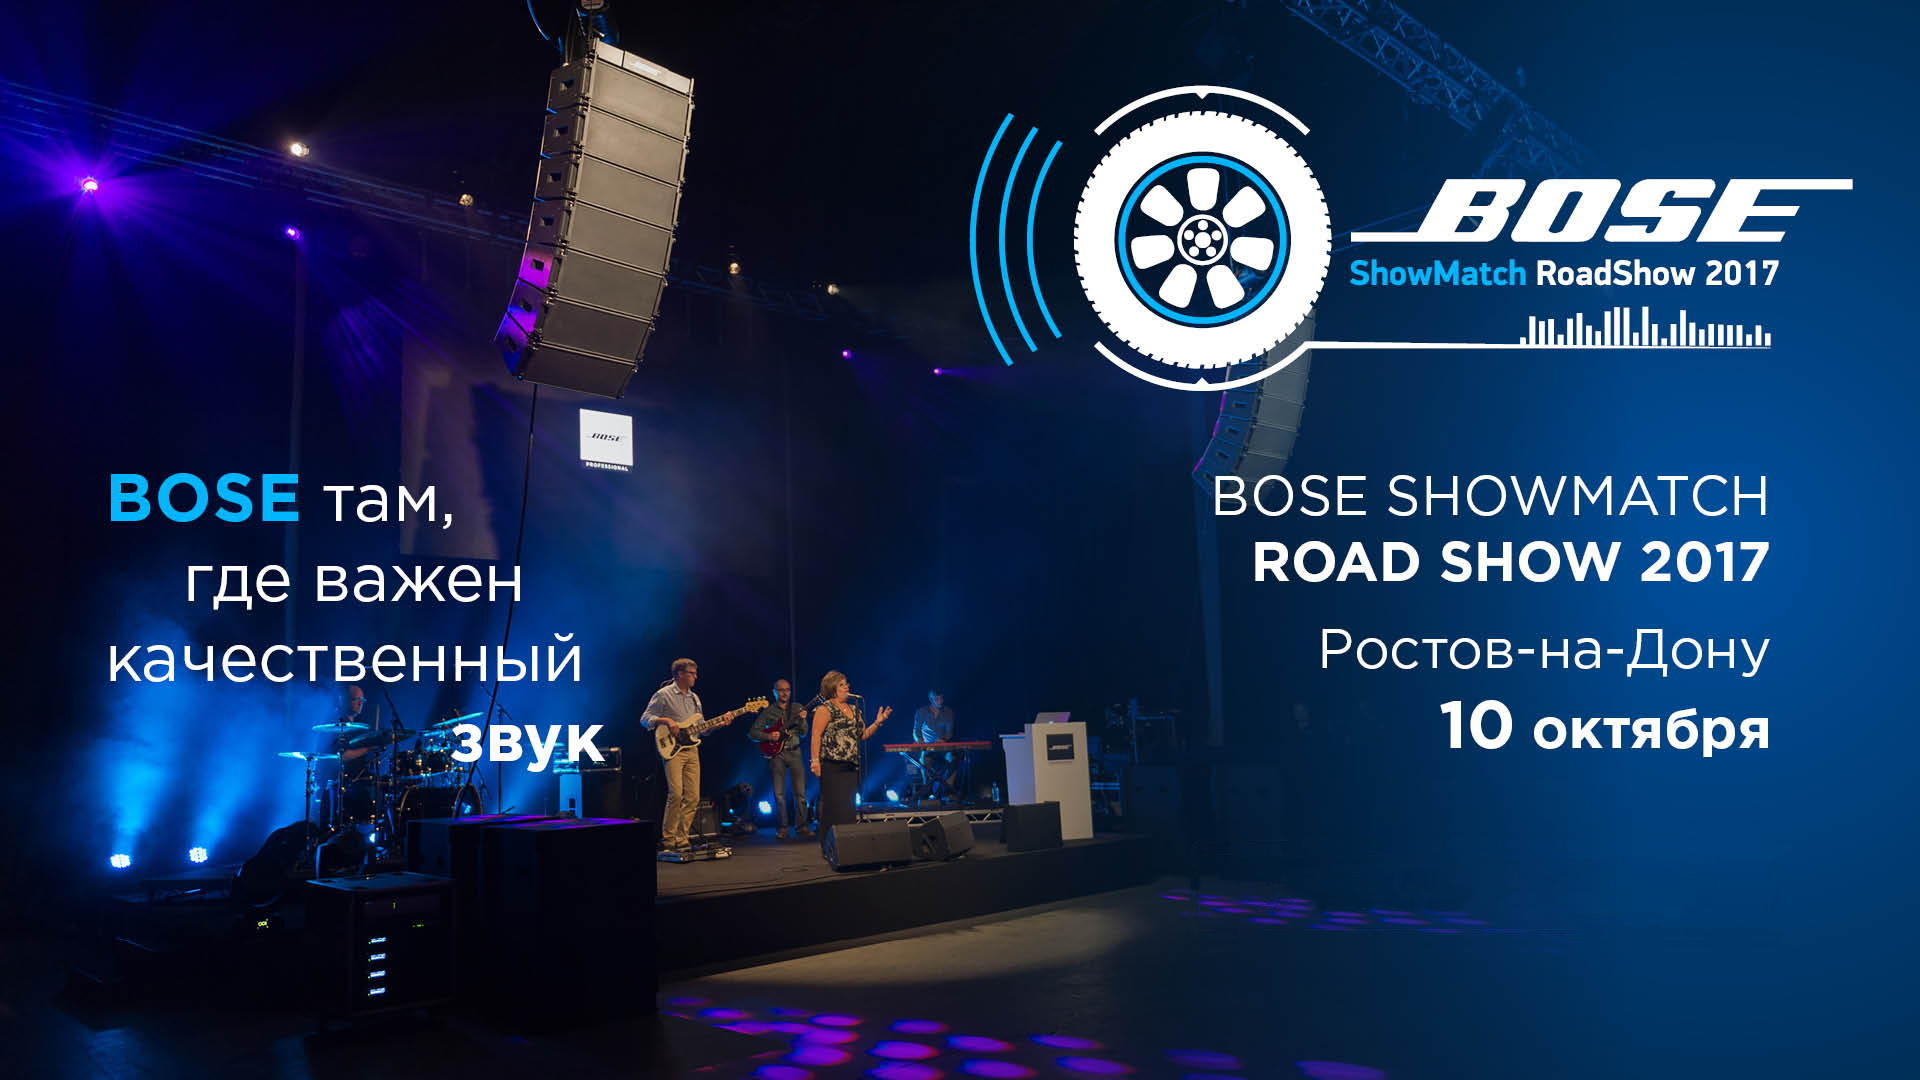 BOSE ShowMatch Road Show 2017